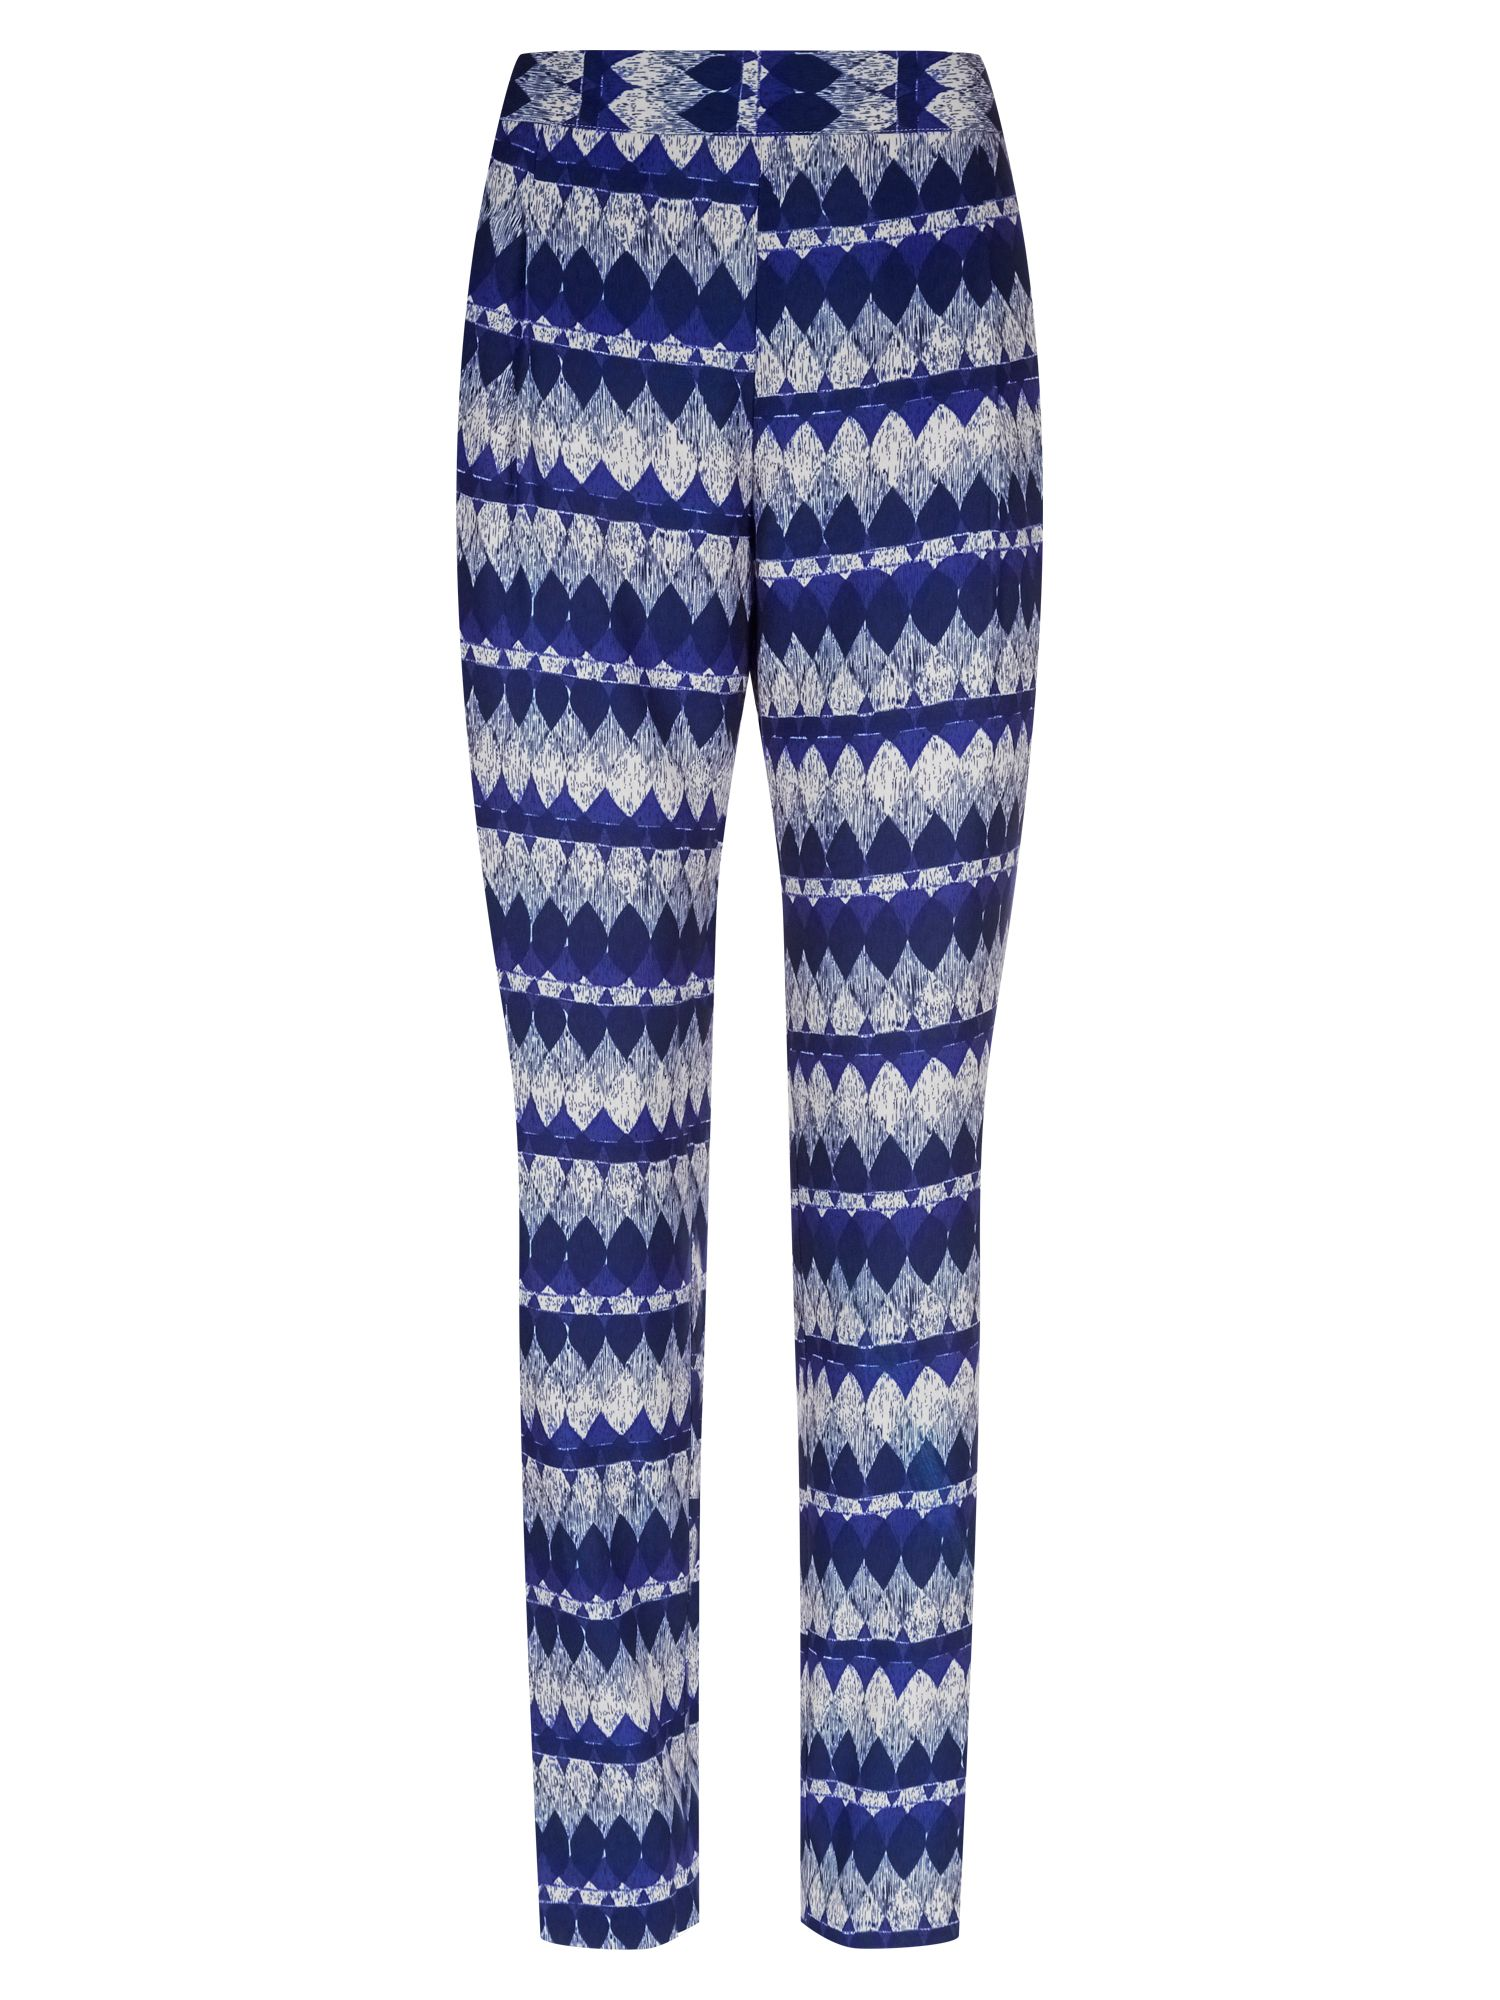 Diamond print slouchy trousers